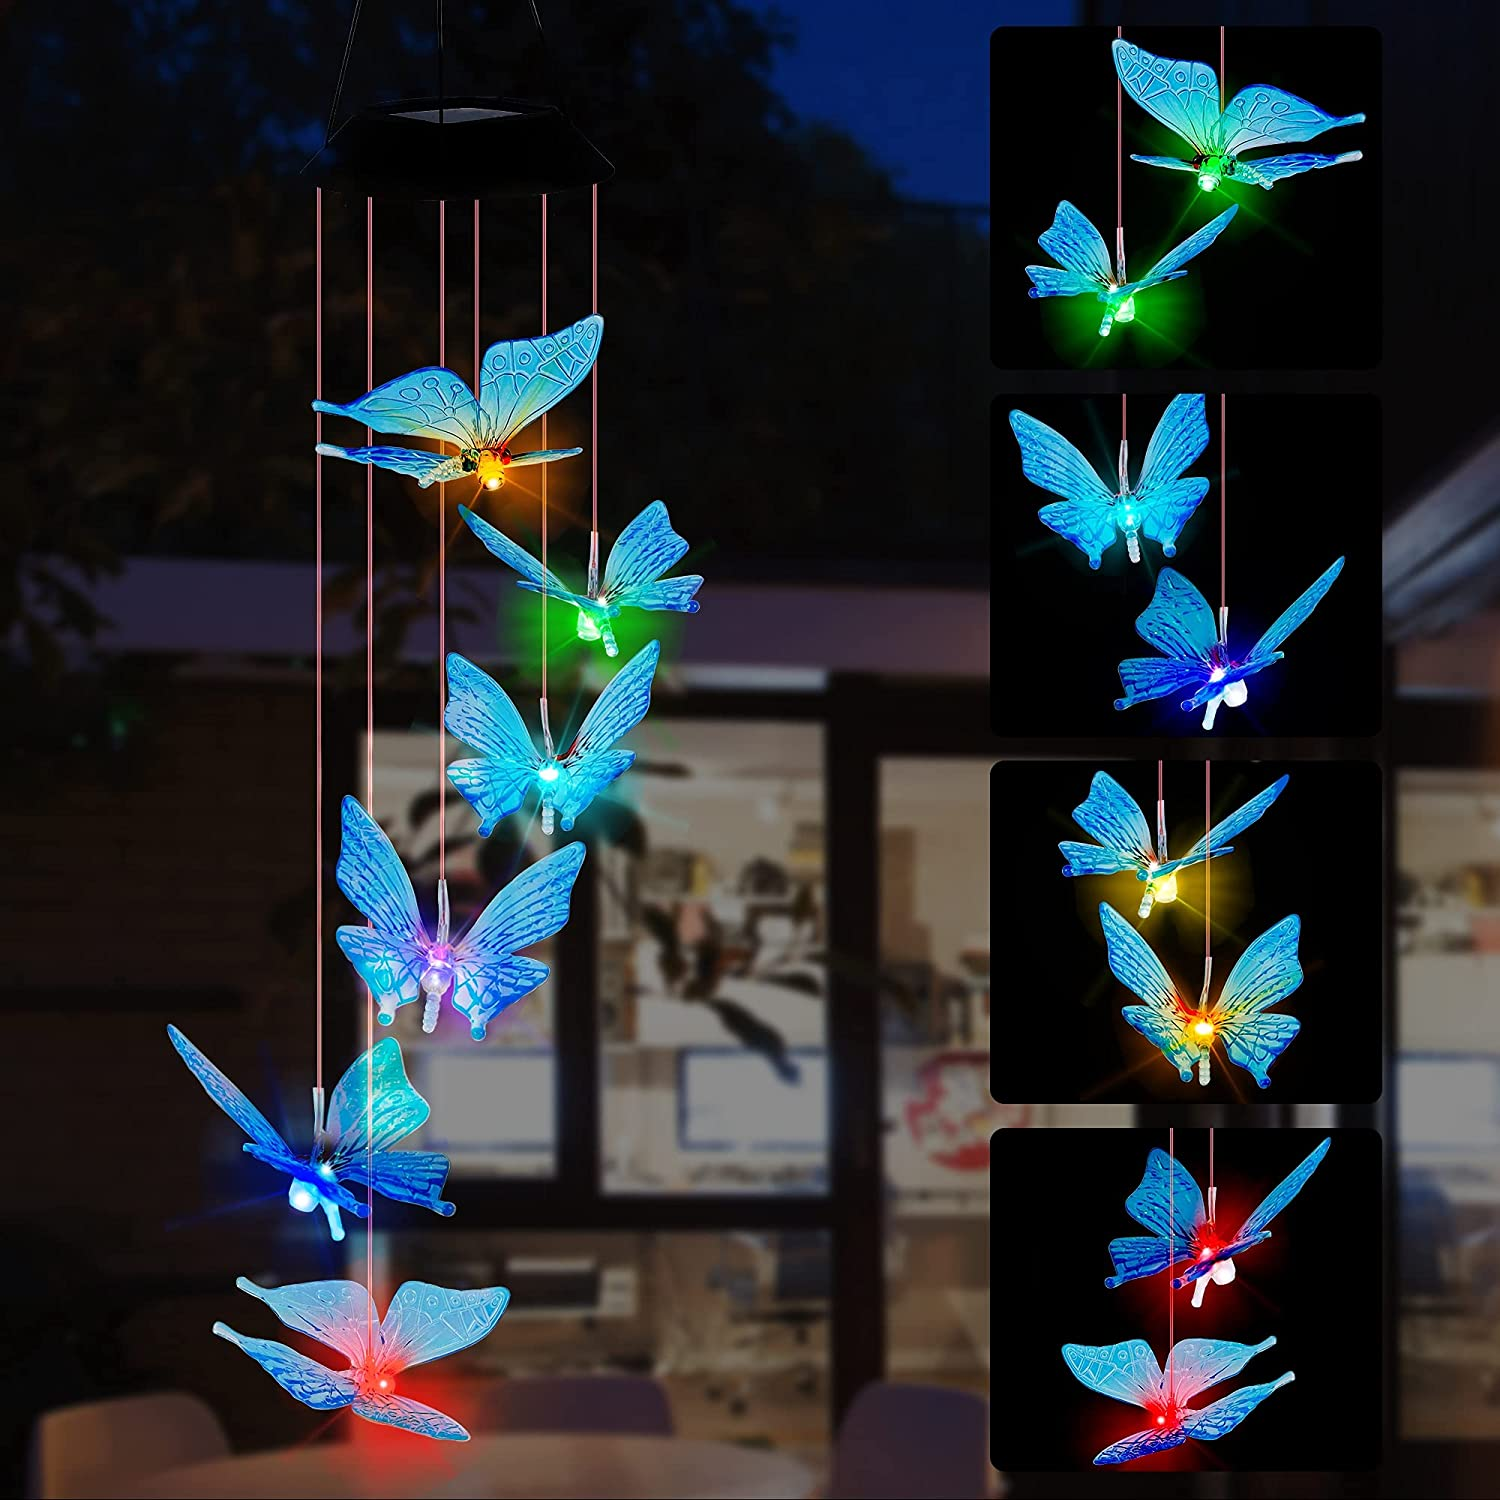 SAND MINE Solar Wind Chimes, Outdoor Solar Butterfly Wind Chimes, Color Changing LED Mobile Wind Chime, Outdoor Waterproof LED Solar Light for Porch Deck Garden Patio Decor, Blue